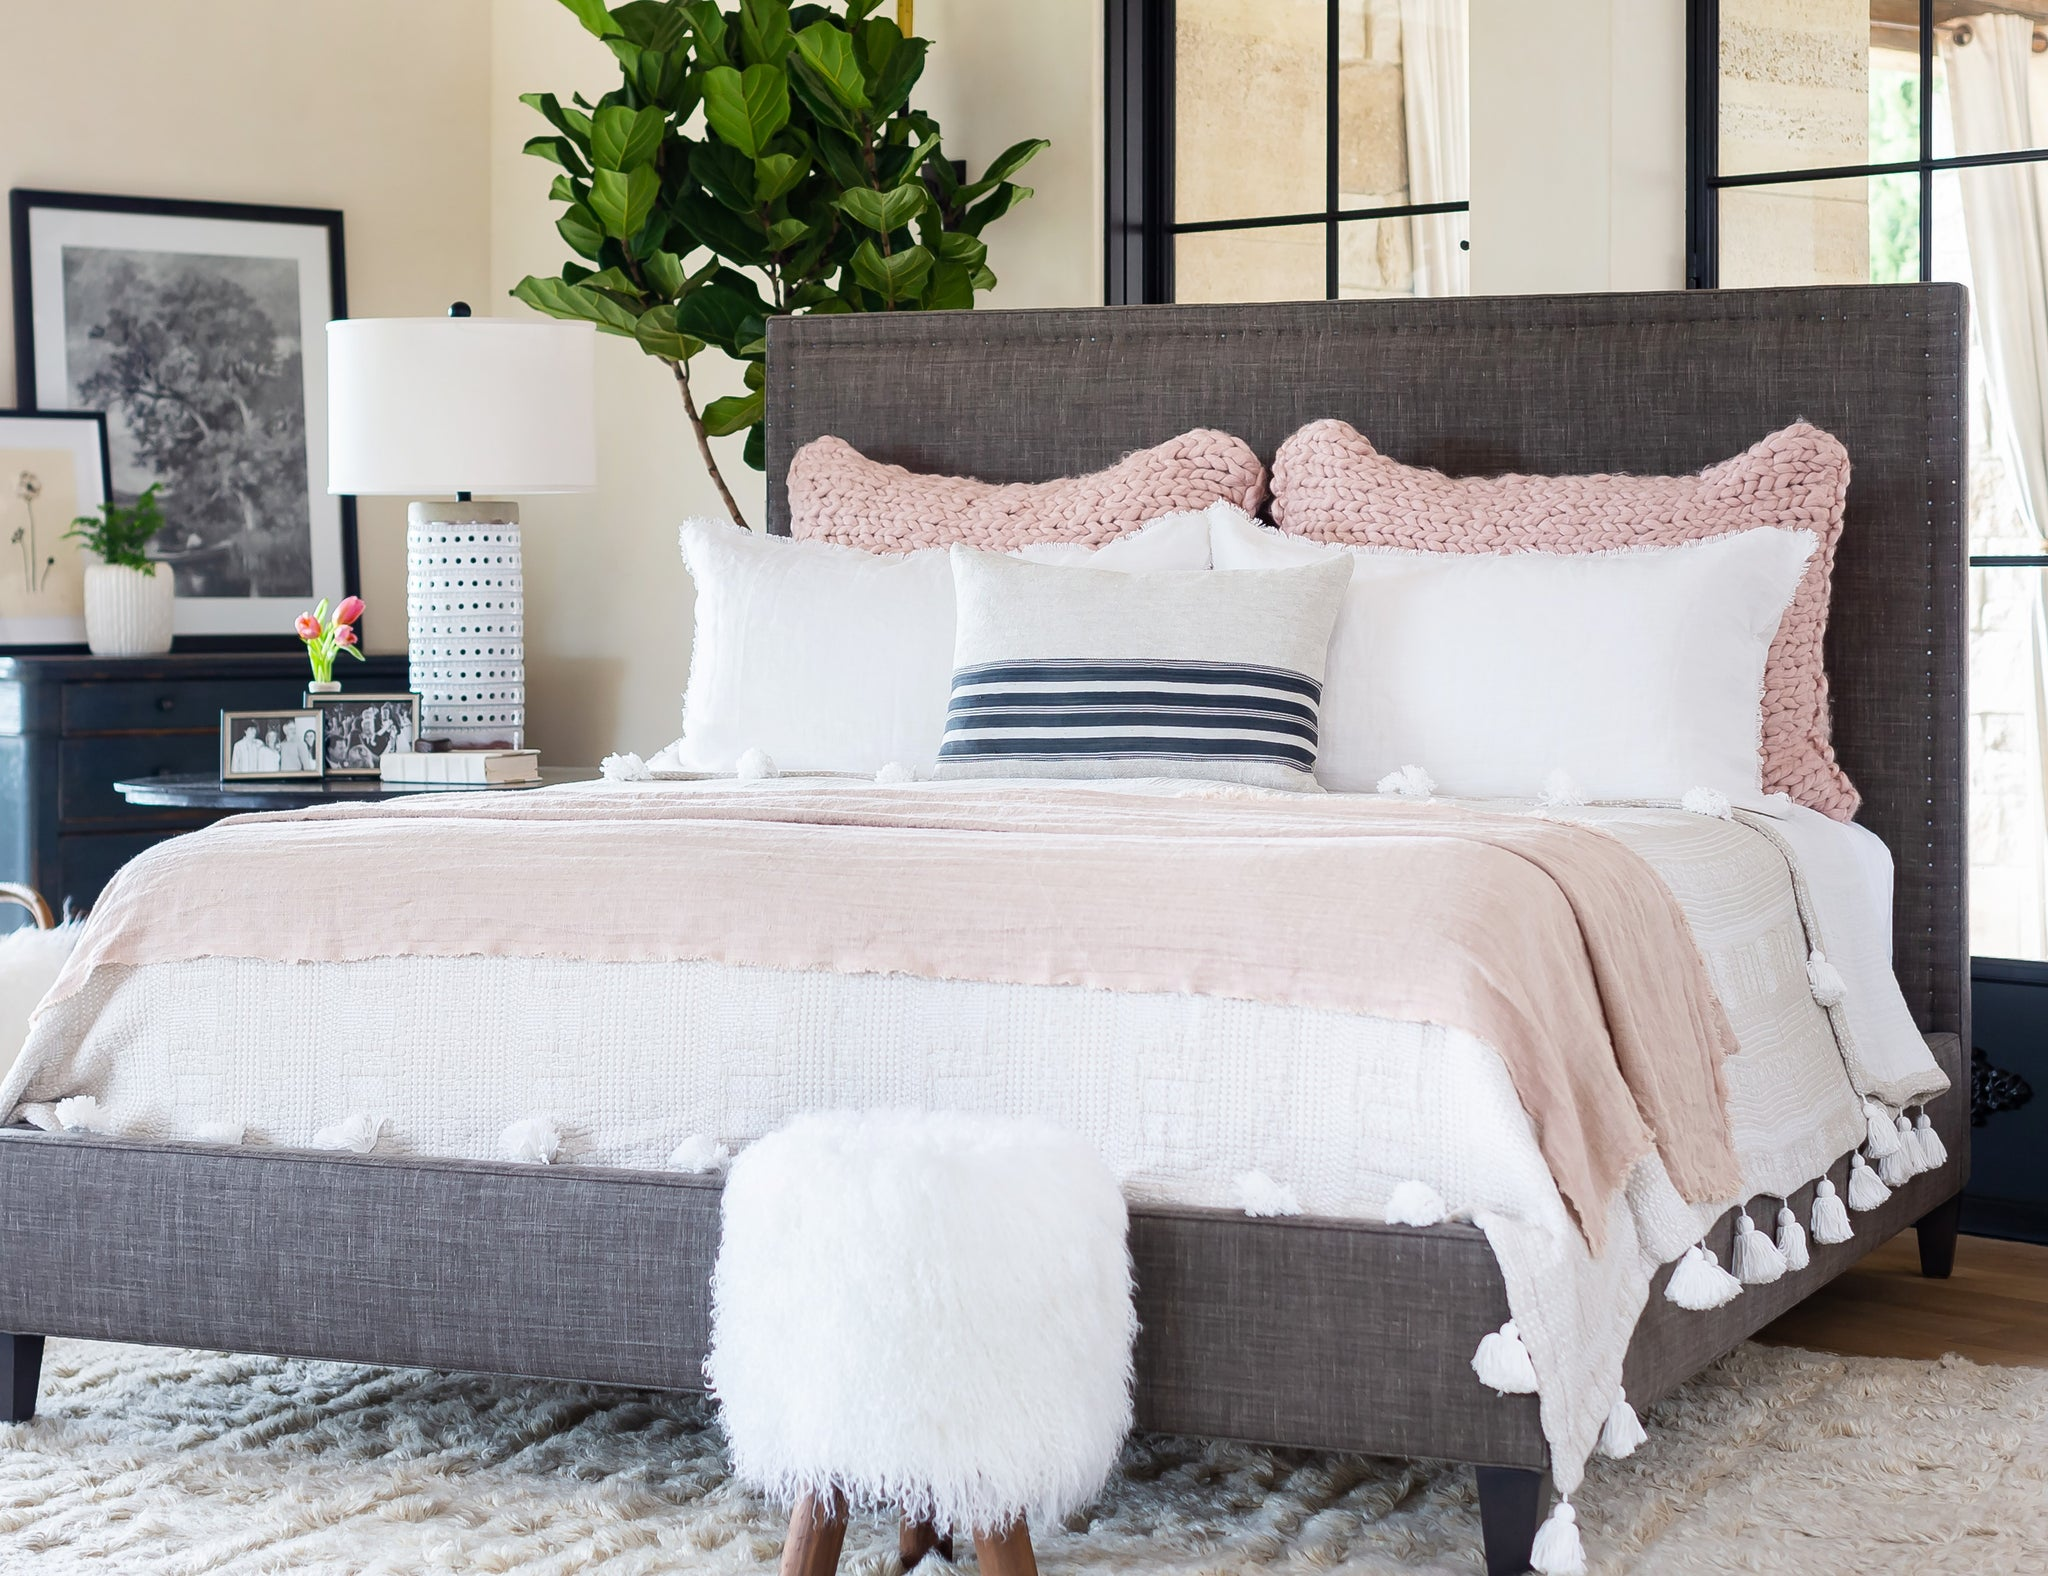 Patterned Tassel Coverlet Styled on Shelton Bed